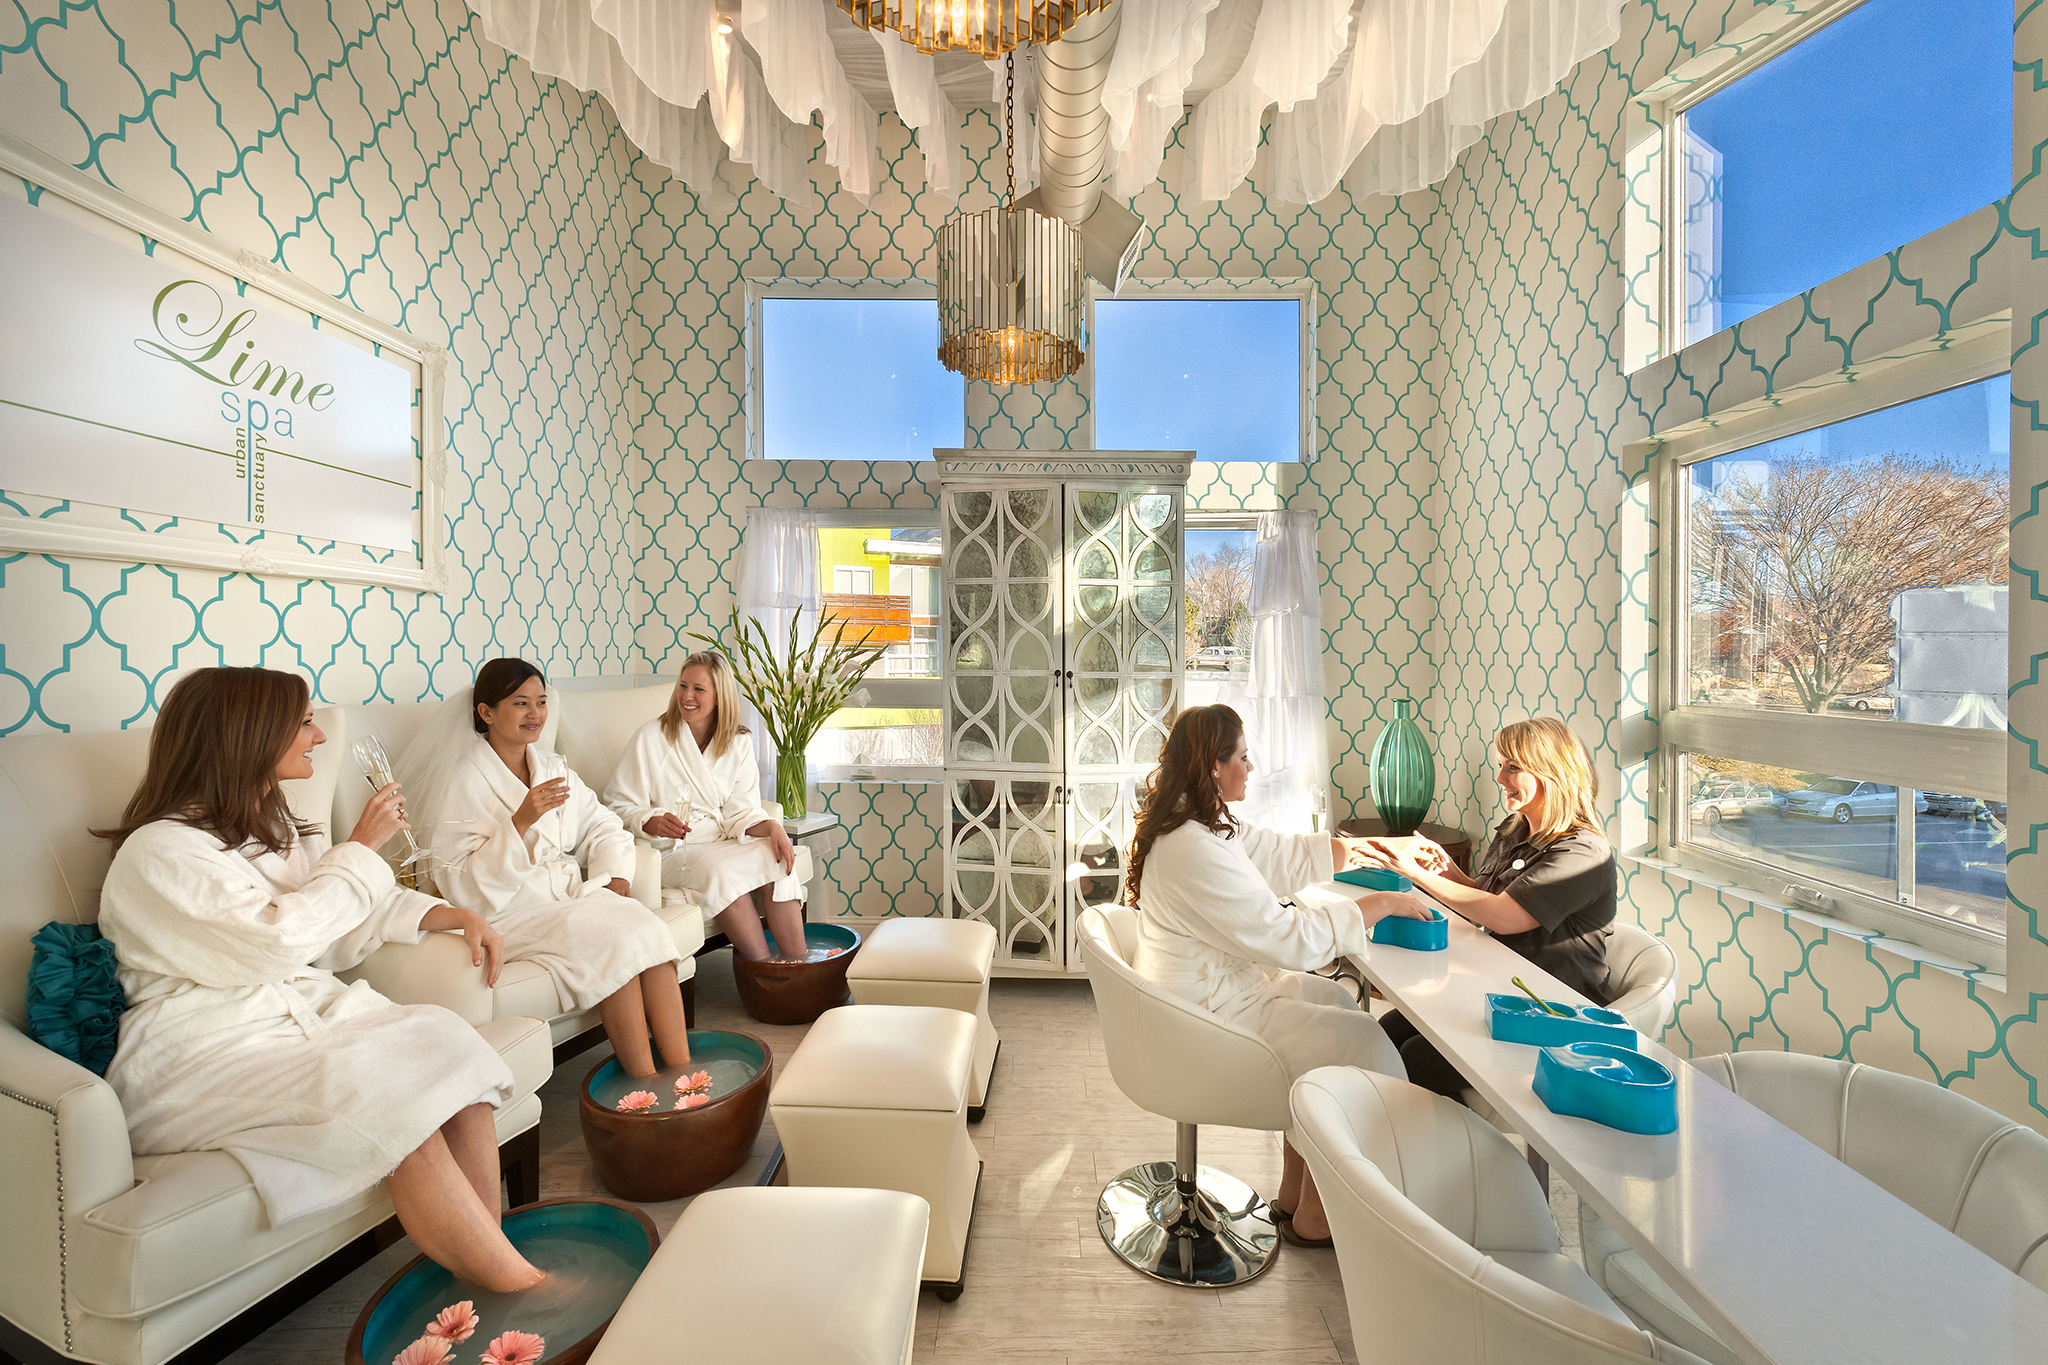 Best day spas and spa resorts in America